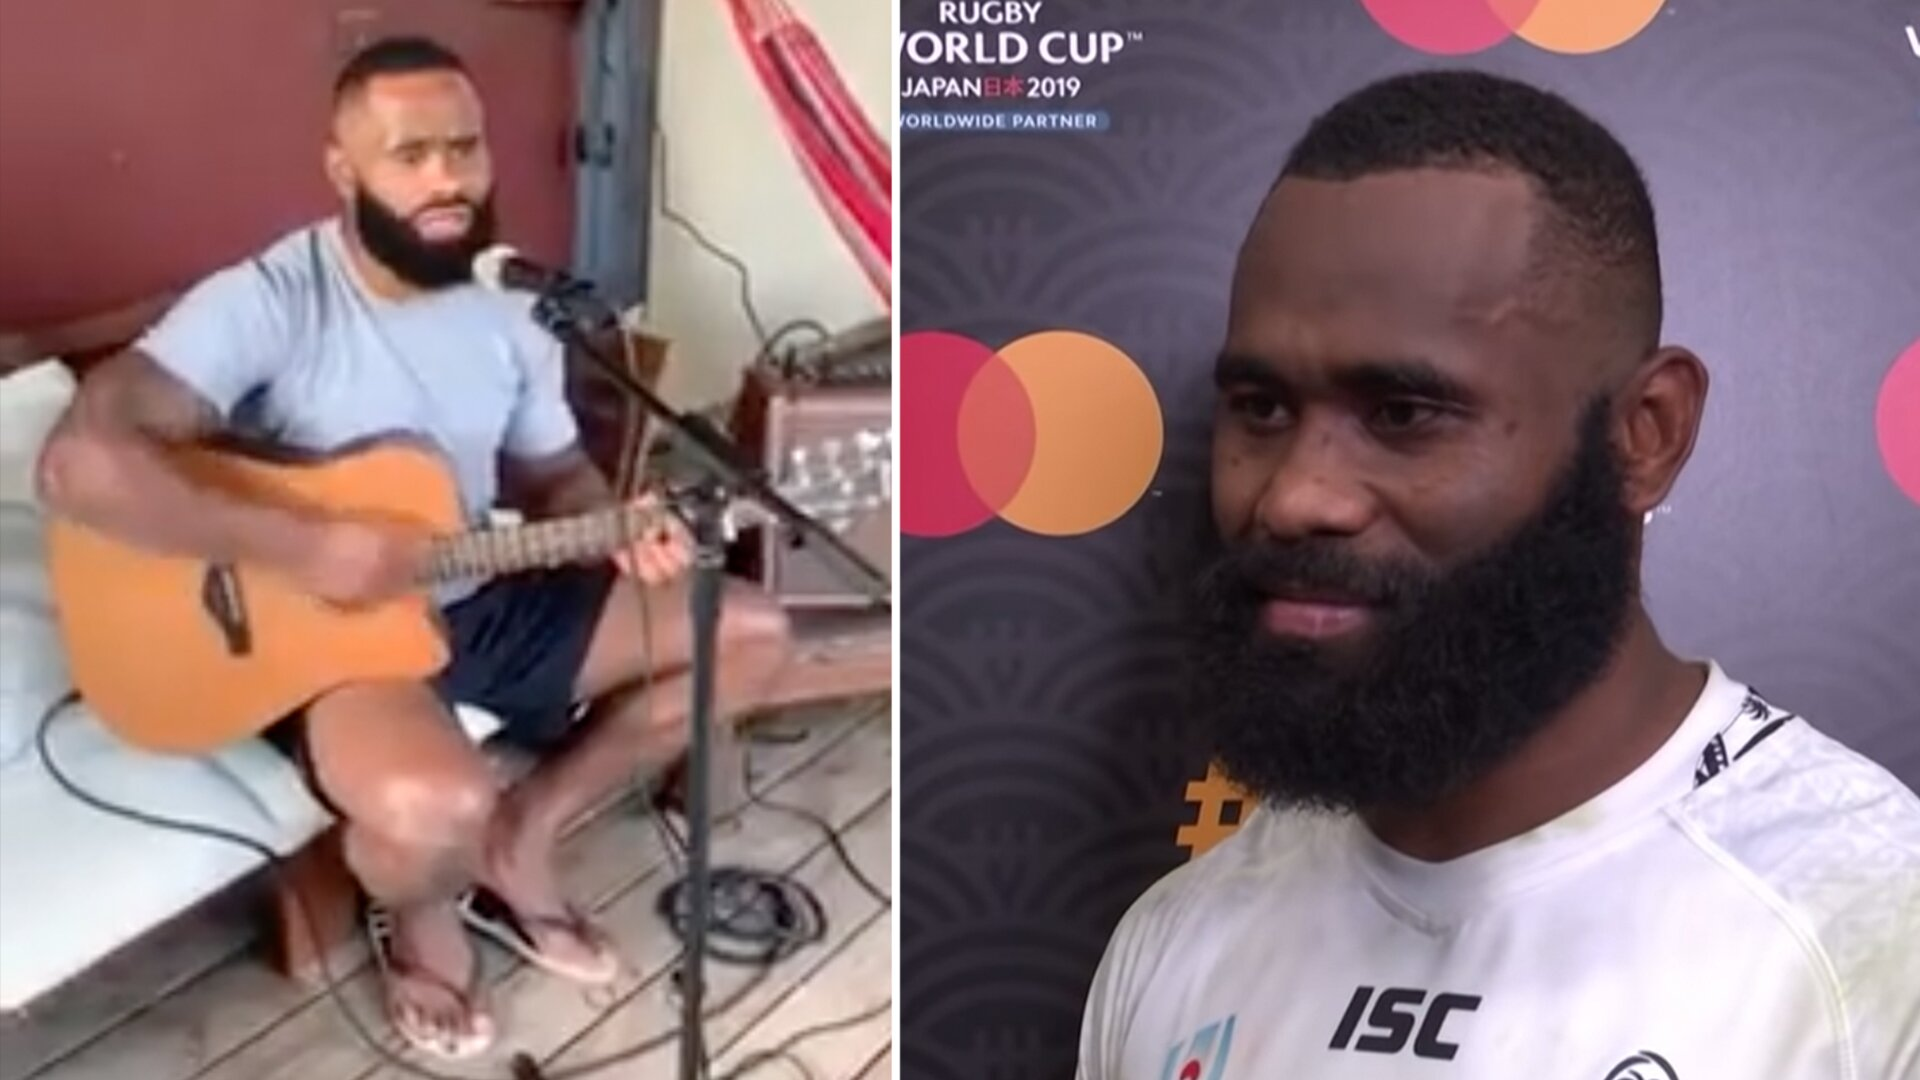 Rugby star Semi Radradra has an unbelievable talent that nobody knows about